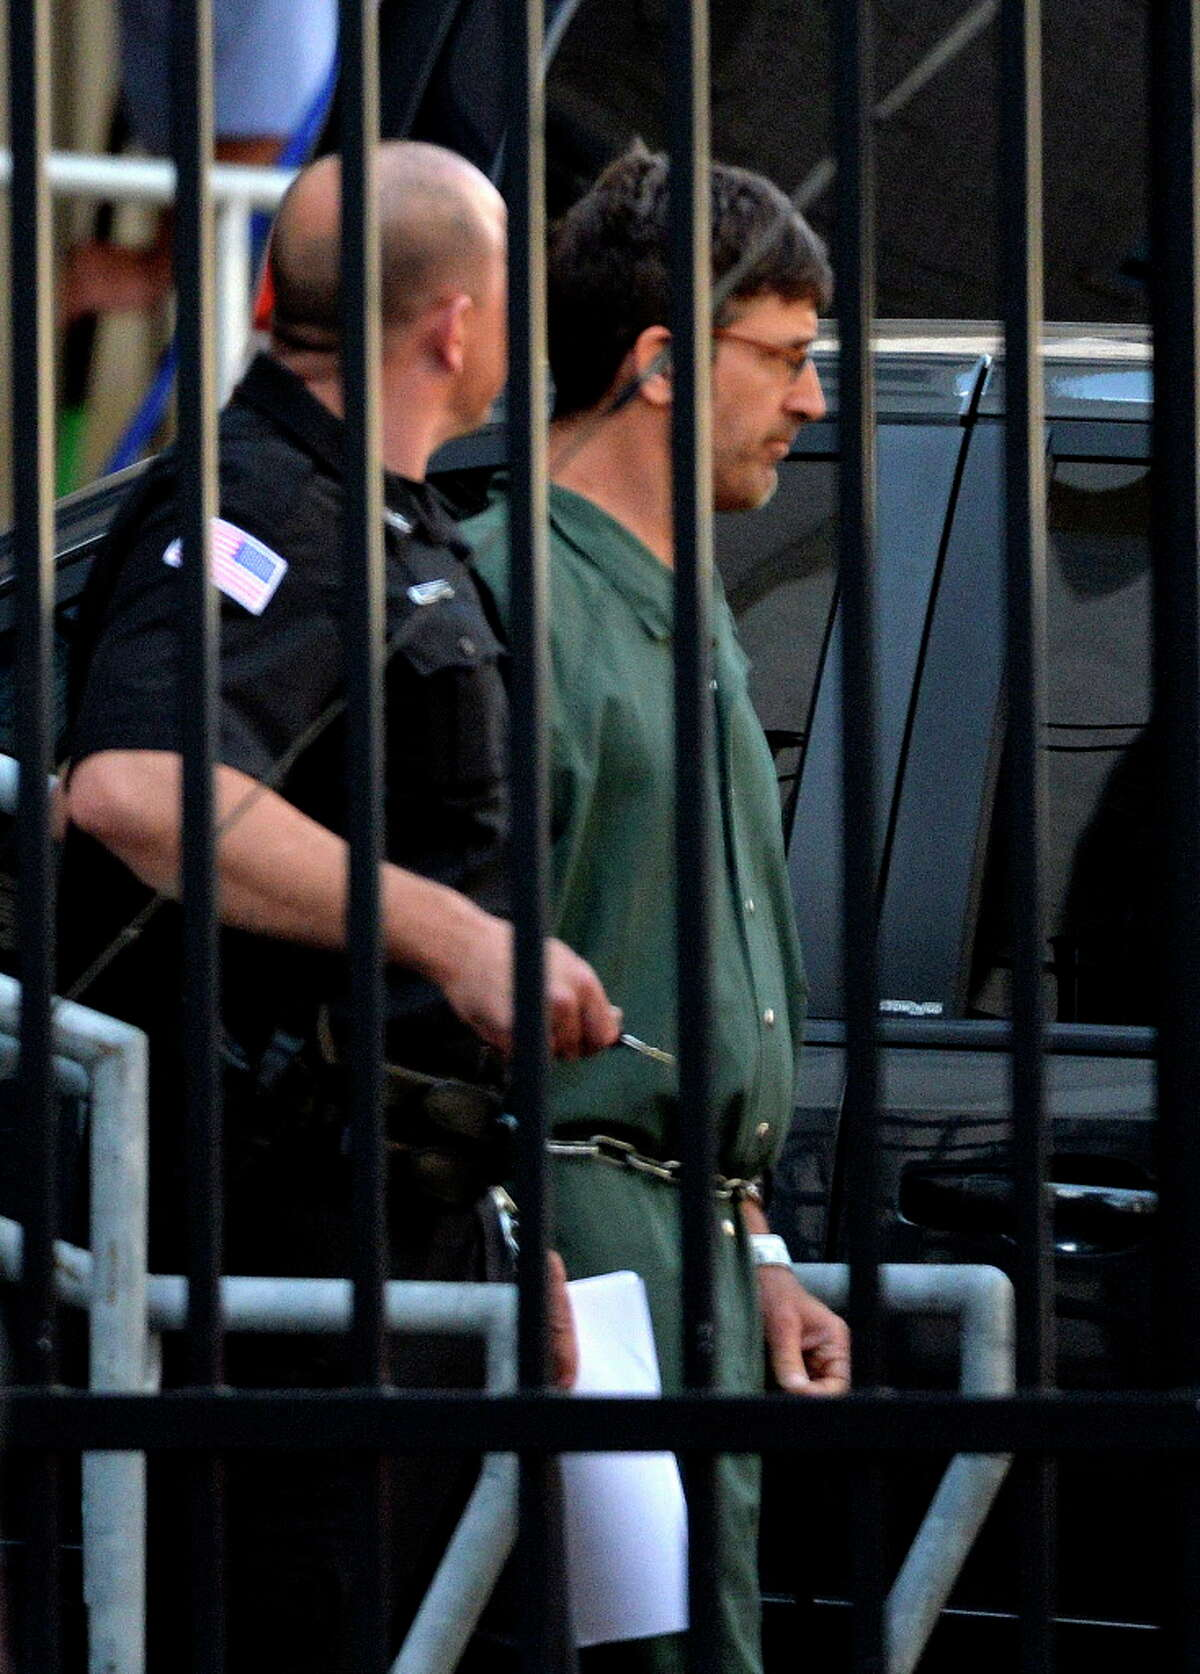 Glendon Scott Crawford leaves the federal courthouse in shackles after being arraigned Wednesday afternoon, June 19, 2013, in Albany, N.Y. (Skip Dickstein/Times Union archive)